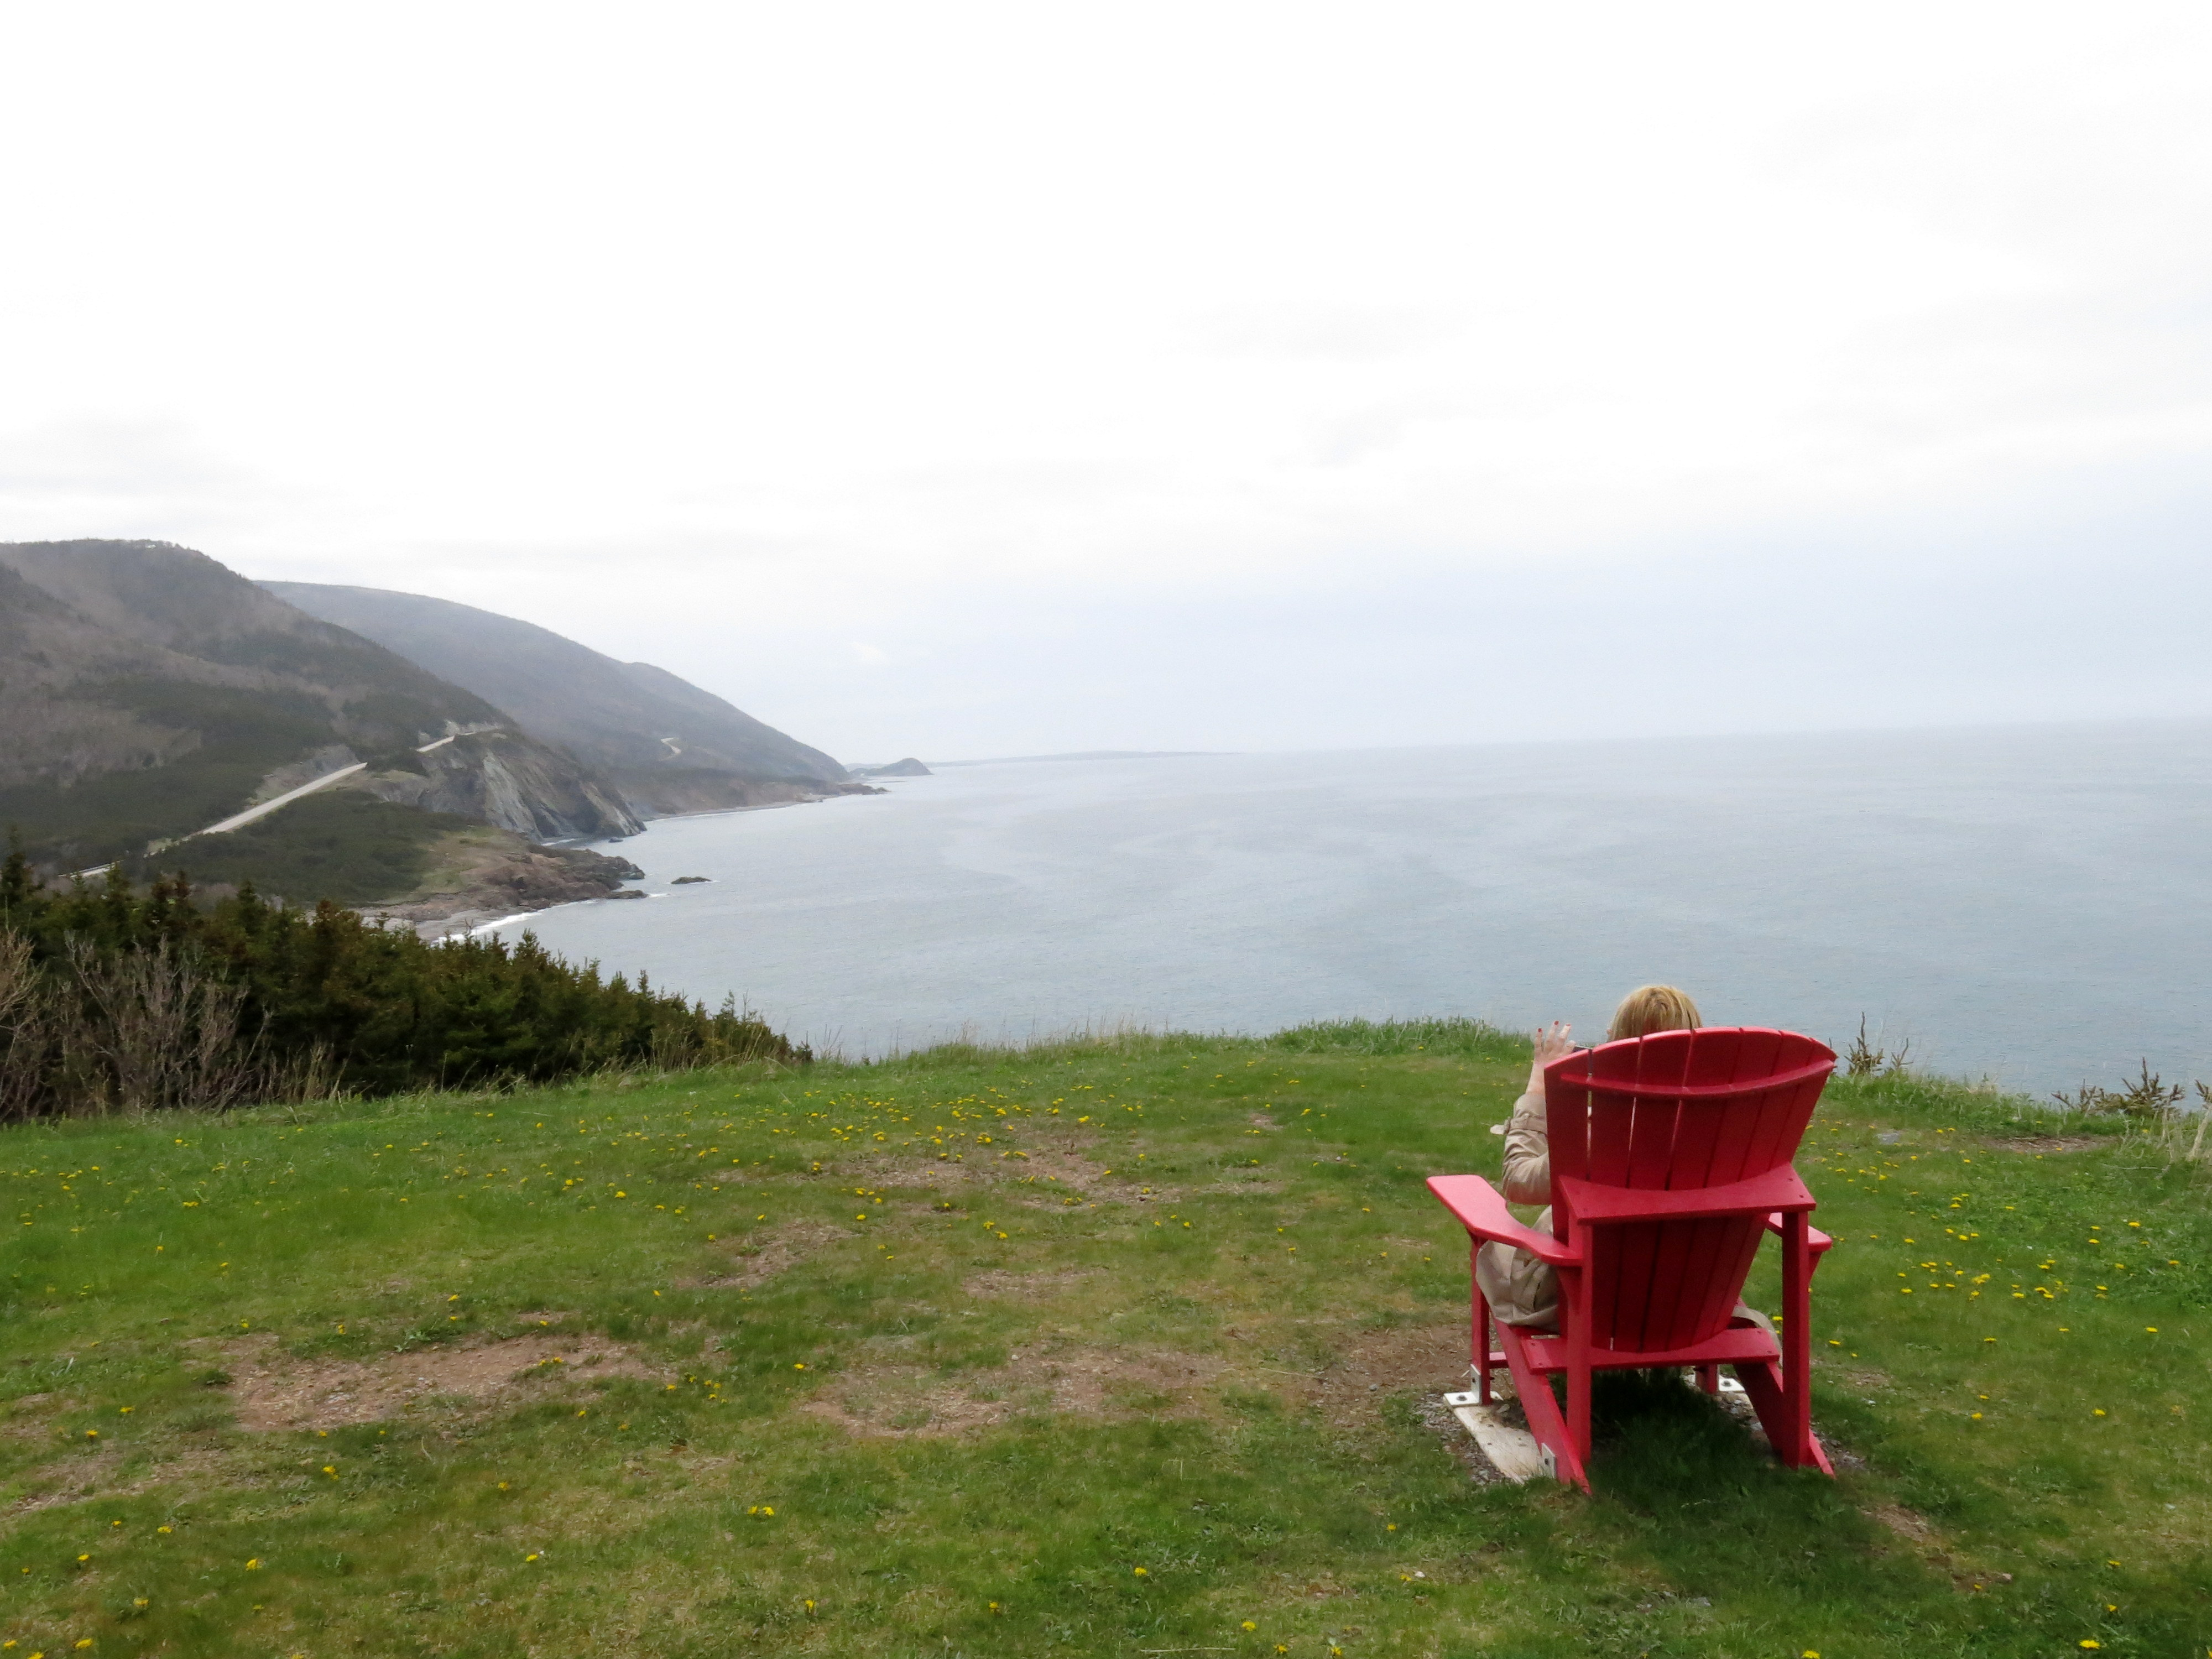 Cape Breton Highlands National Park and the Cabot Trail are one of the world's best drives. The hiking is excellent, too. And don't forget the music!